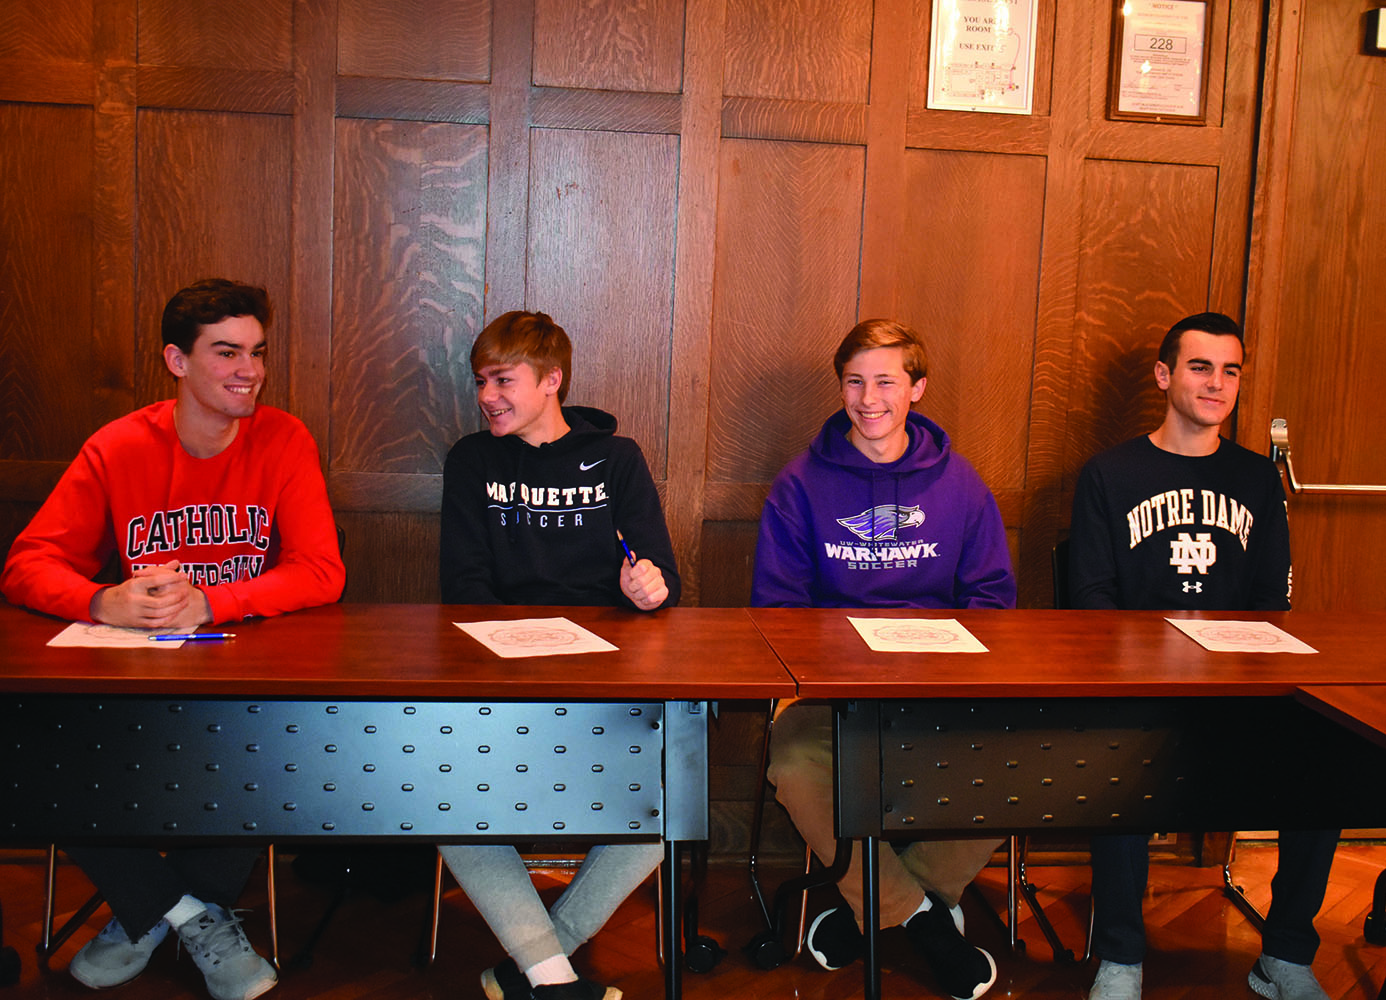 Luke Geraghty '20, Joey Fitzgerald'20, Zack Kristy '20 and Alex Salvino '20 chat and wait to sign (Riordan/LION).